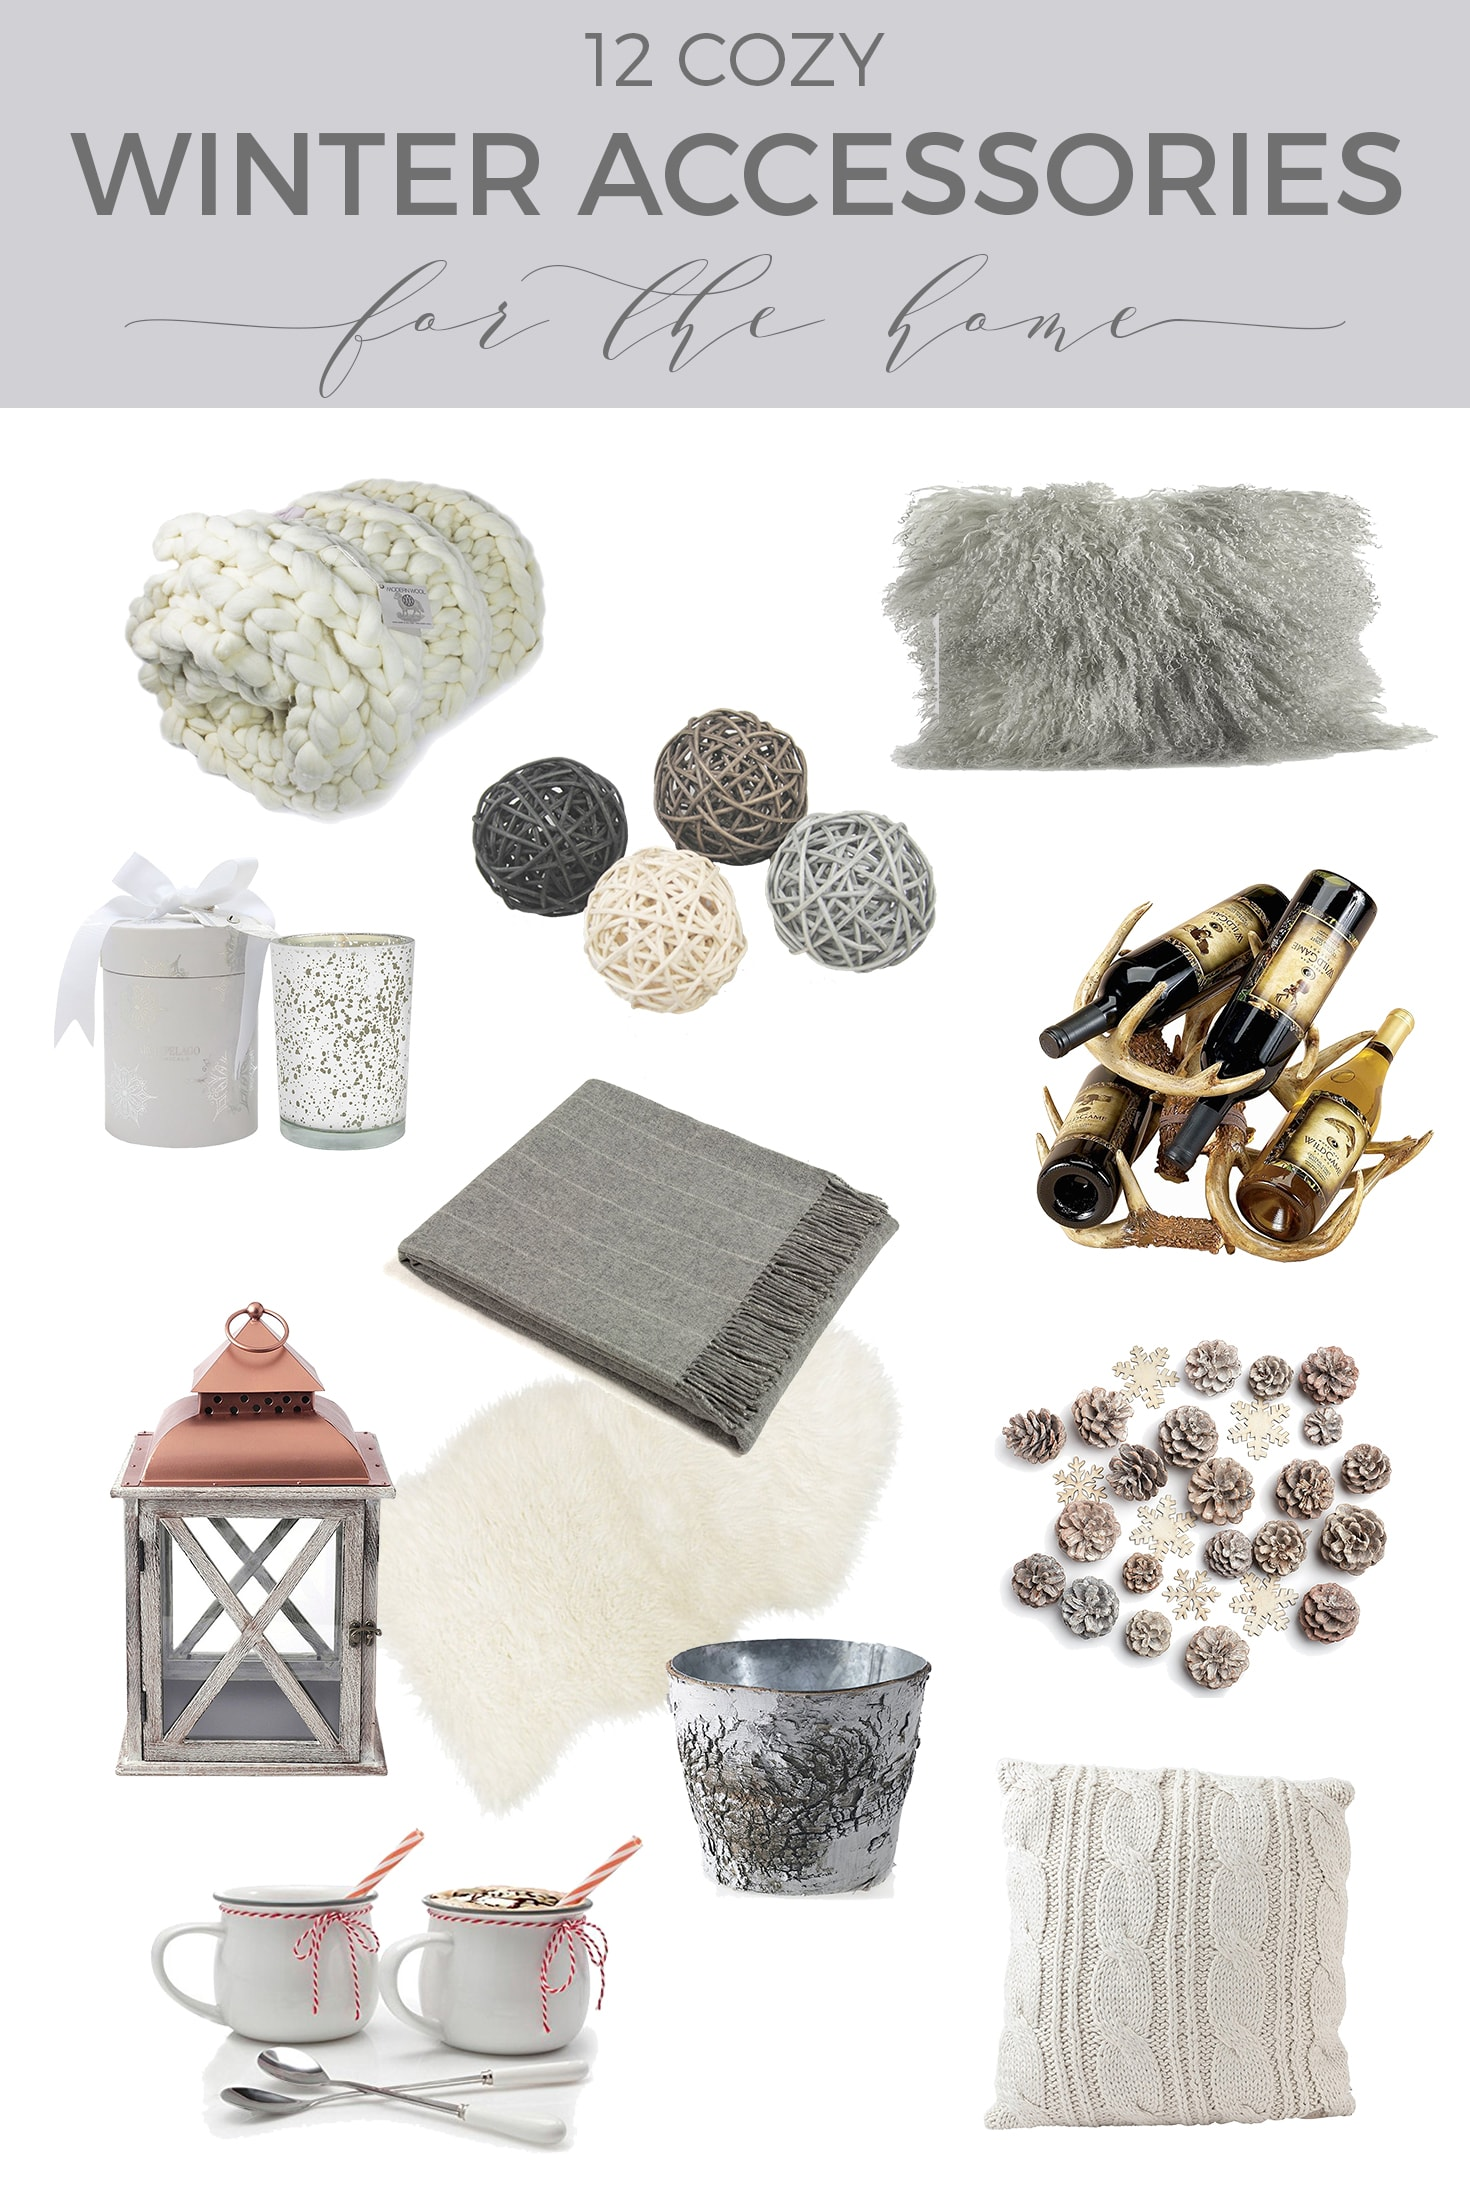 12 Winter Accessories for a Cozy Home - Designthusiasm.com